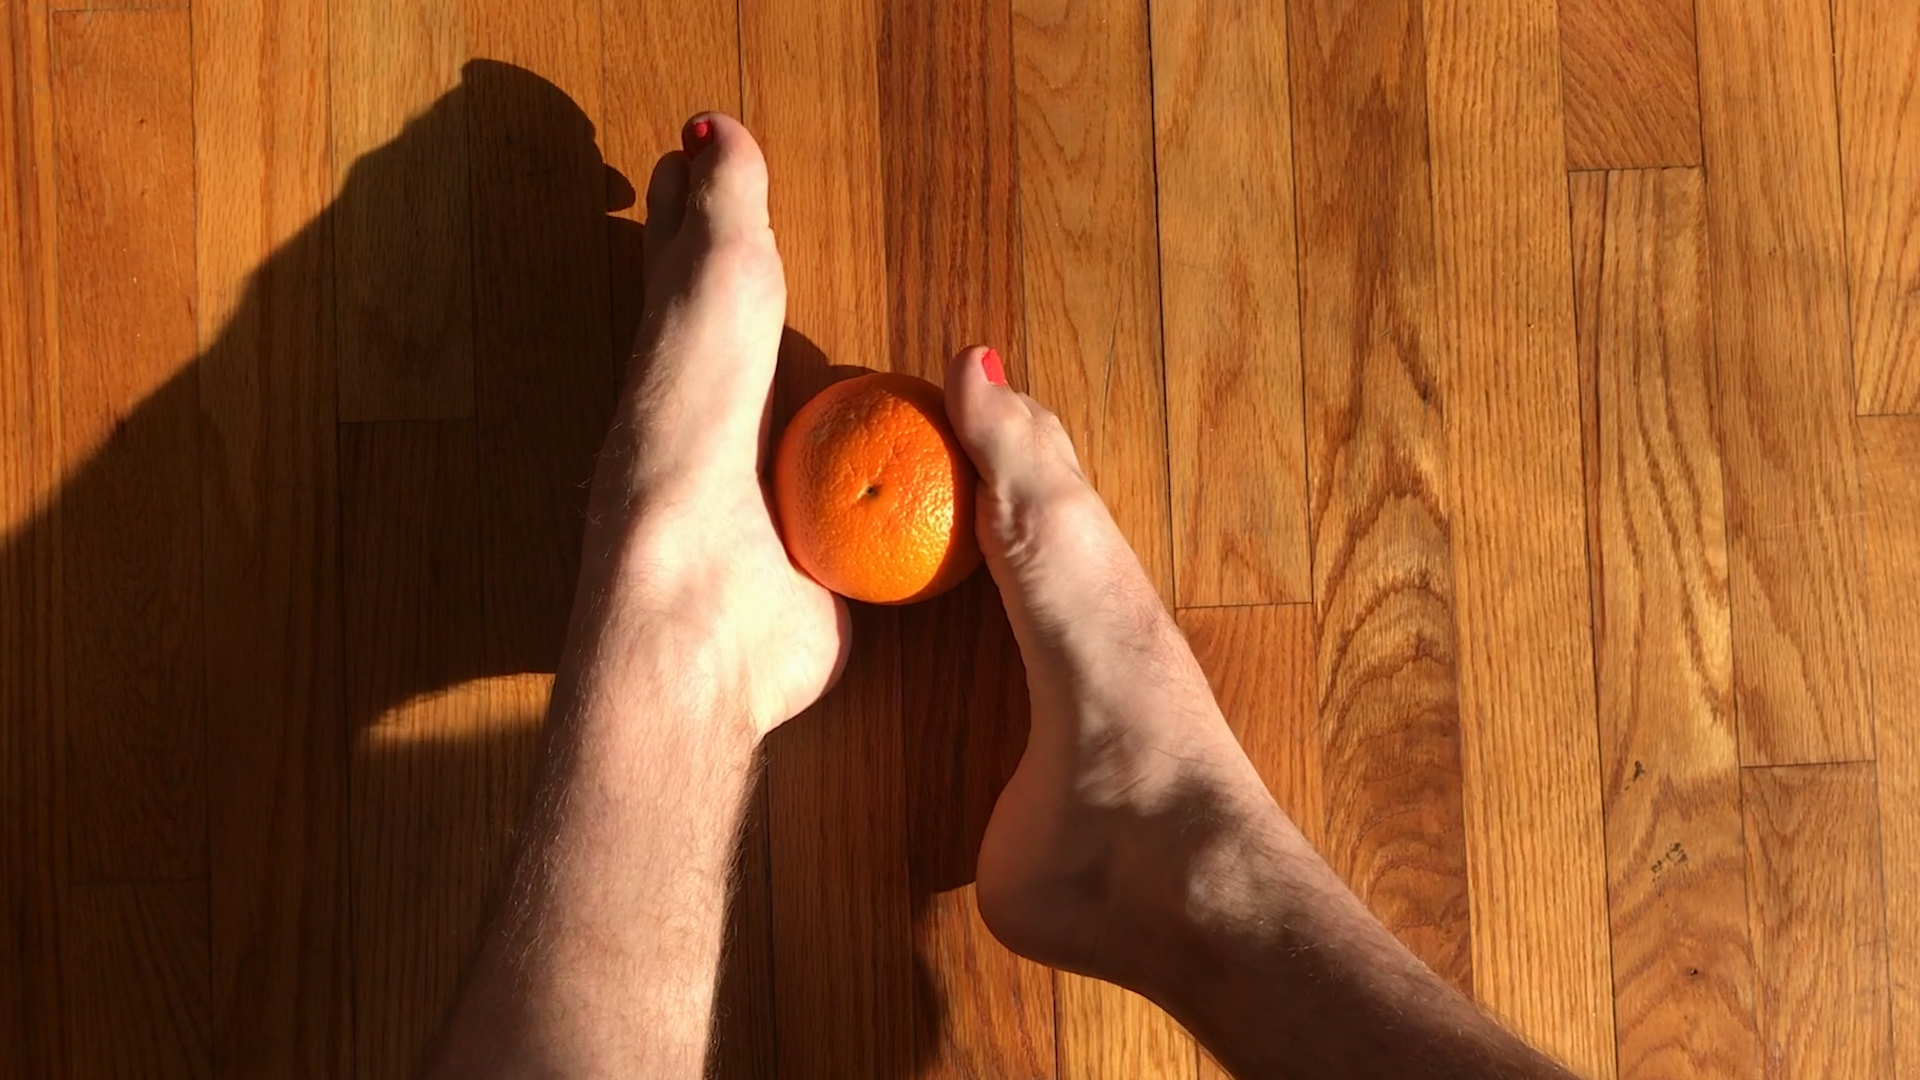 Untitled (Orange) , 2018, Video, 1:31 min